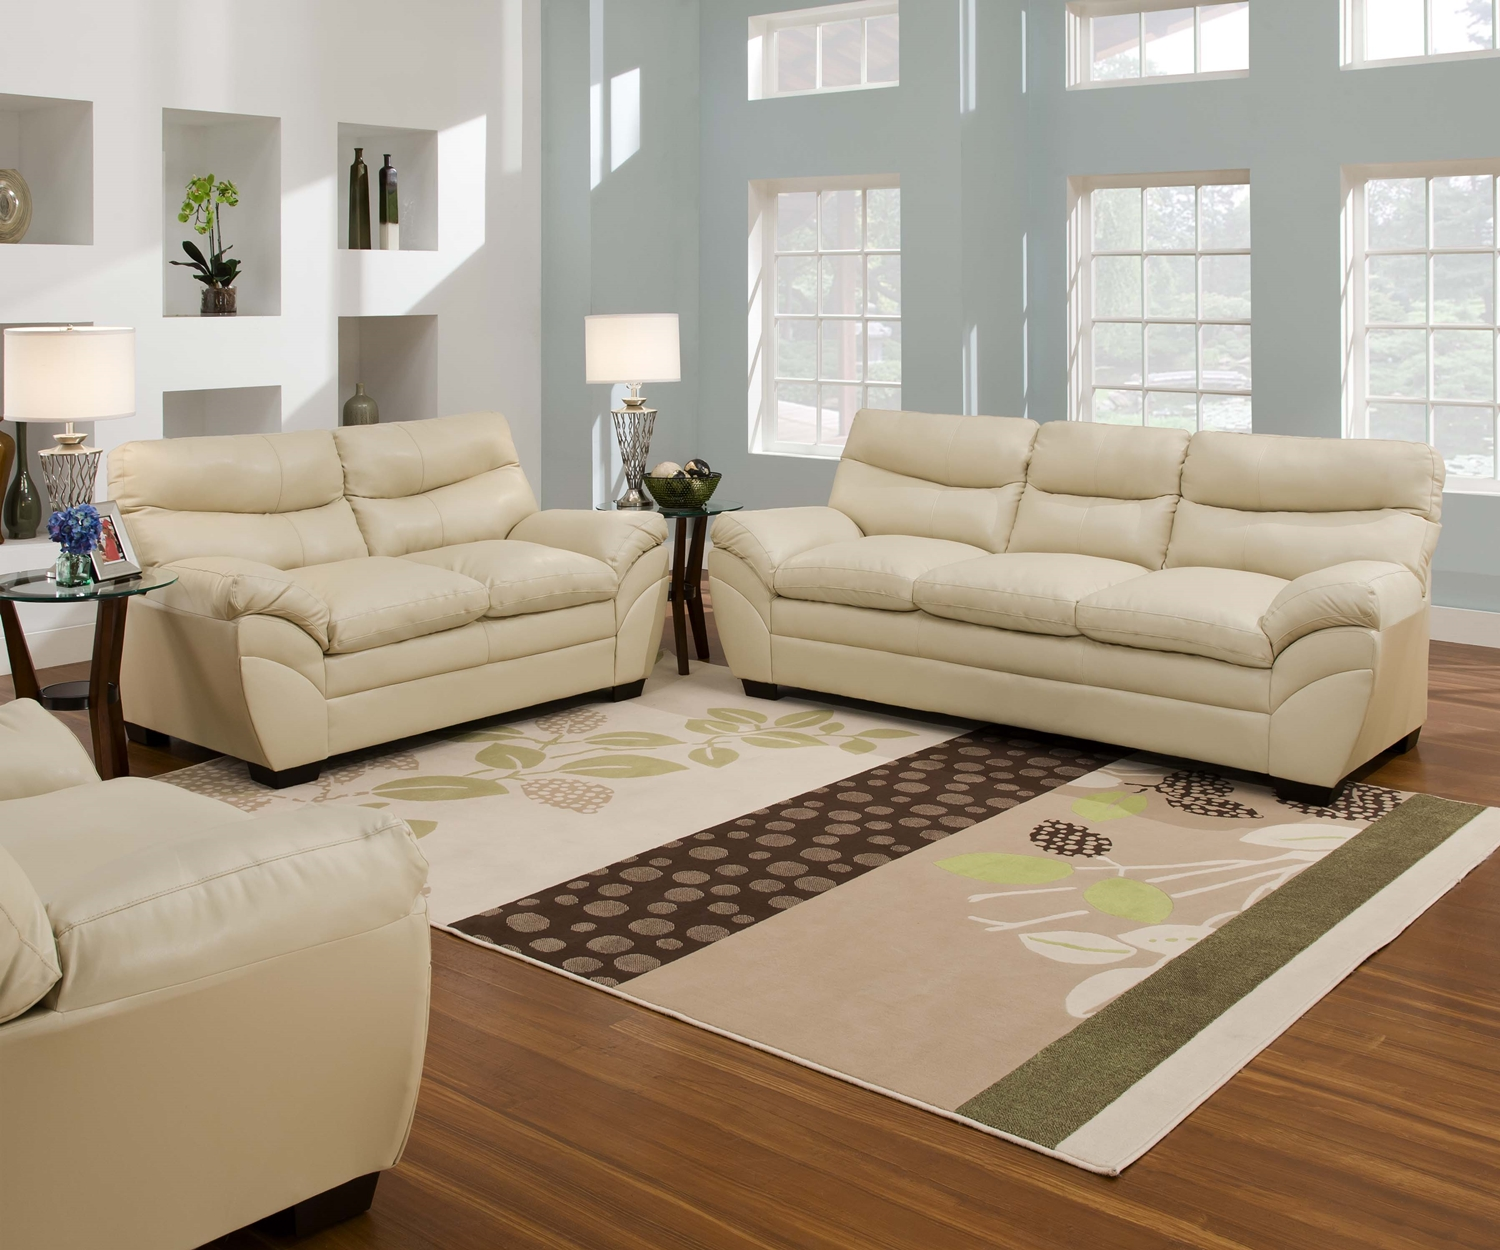 Cream living room furniture modern house for Living room furniture images